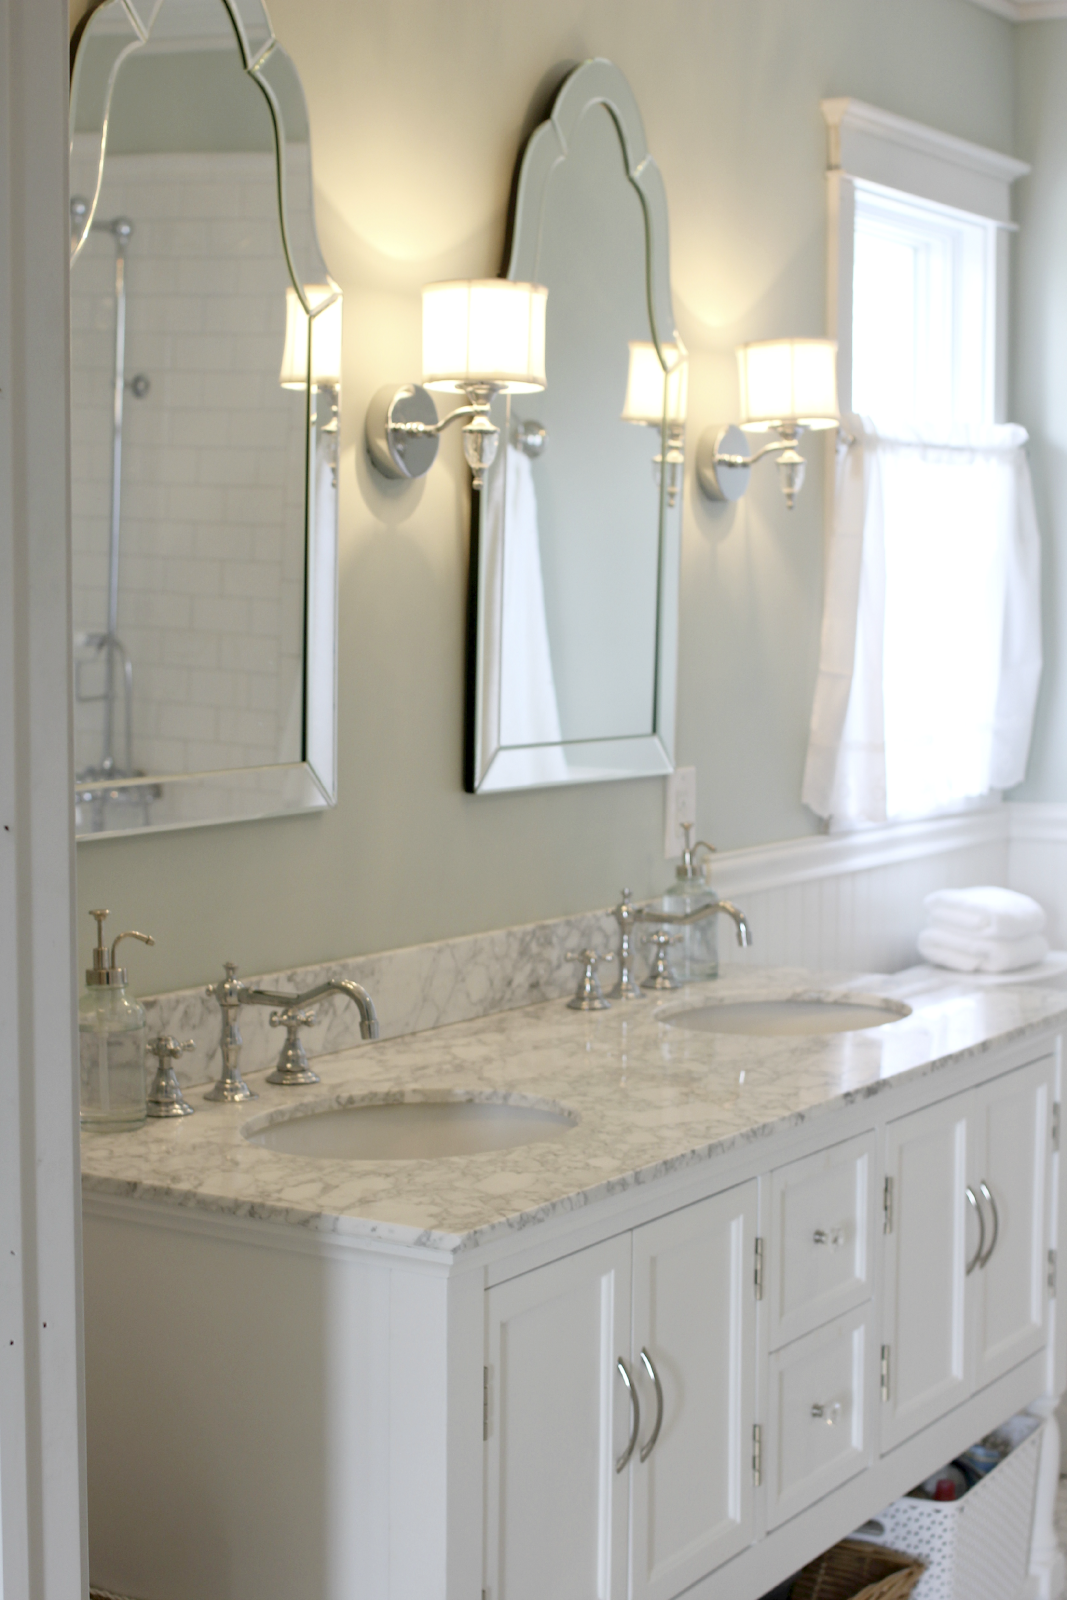 double sink bathroom mirrors. Sinks With Venetian Mirrors And Pretty Sconces ~ Double Sink Bathroom H